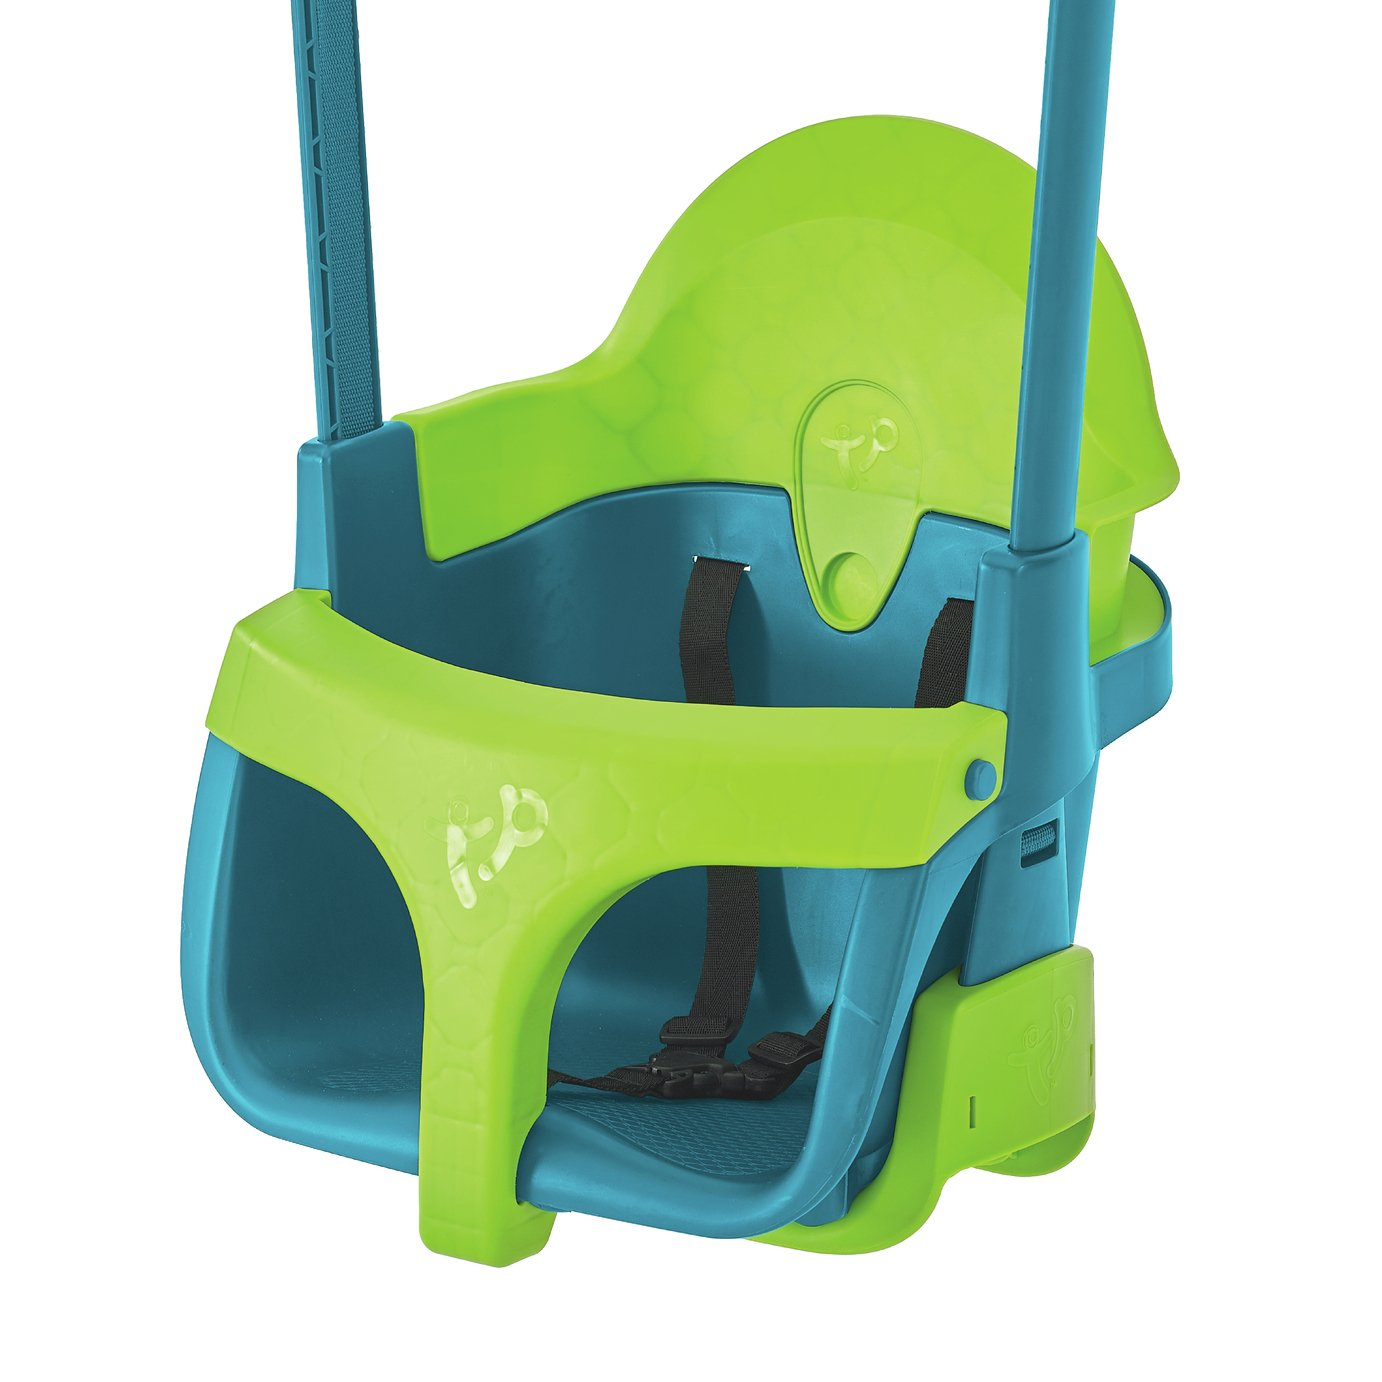 TP Quadpod 4 in 1 Toddler and Kids Swing Seat - Green